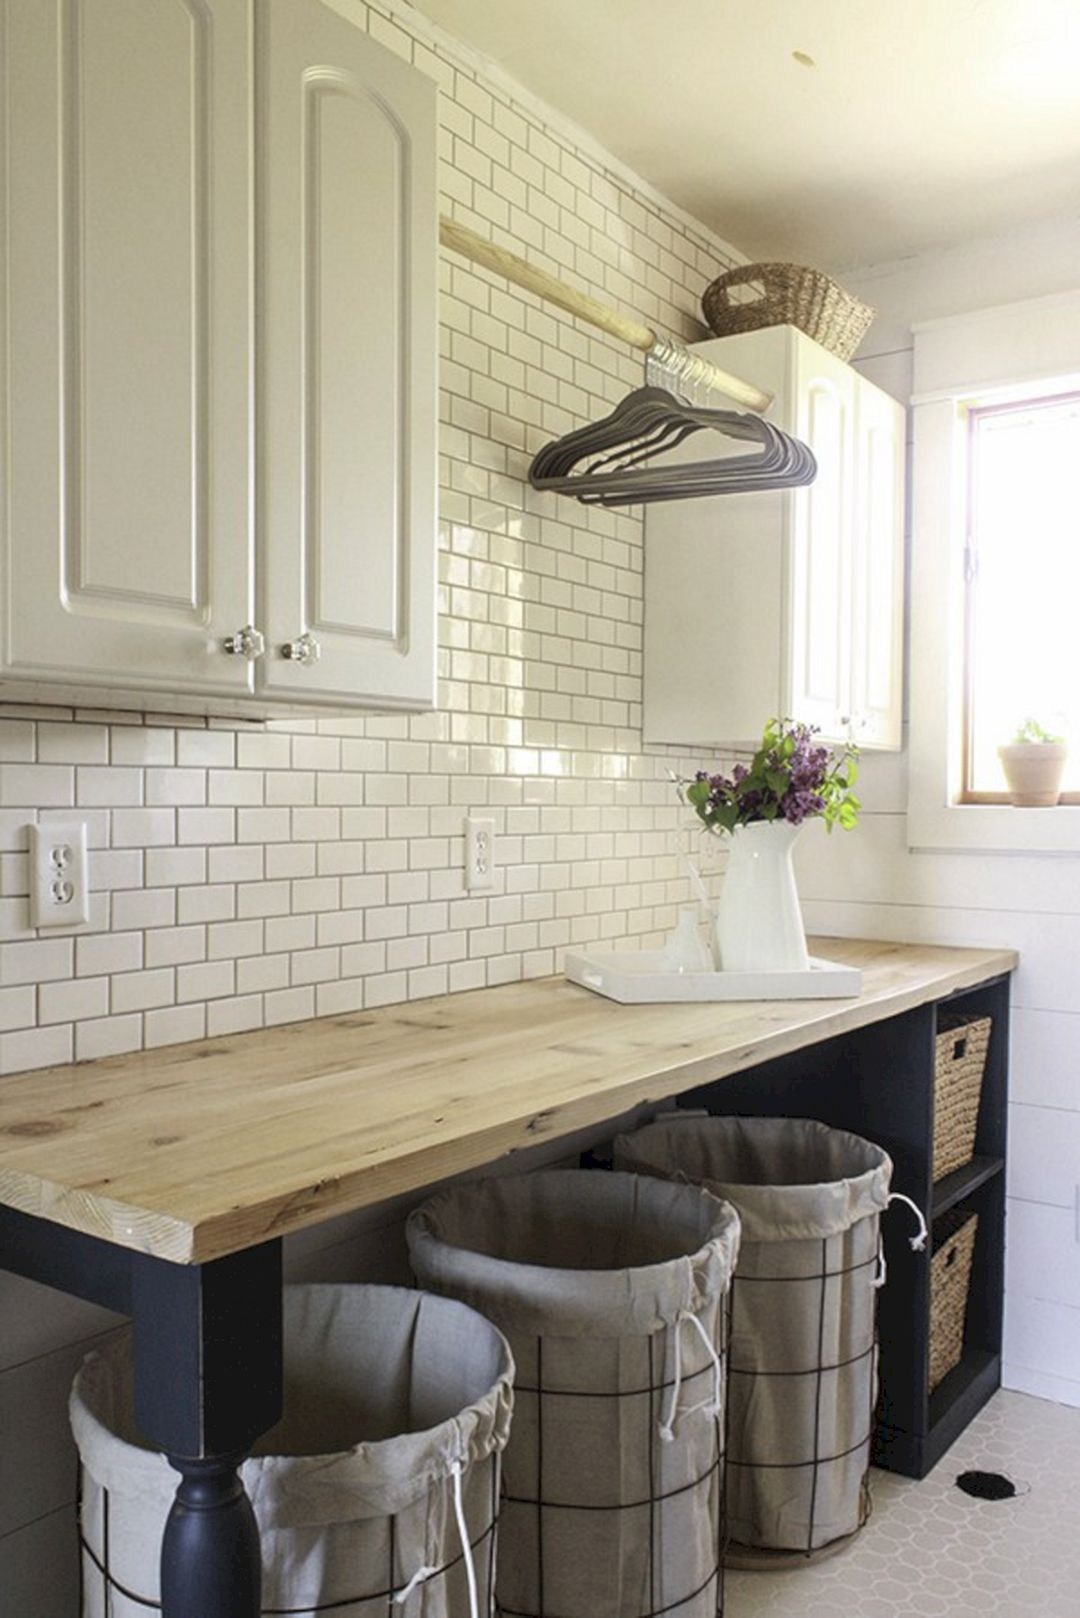 Best Farmhouse Style Ideas : 47+ Rustic Home Decor | Pinterest ...